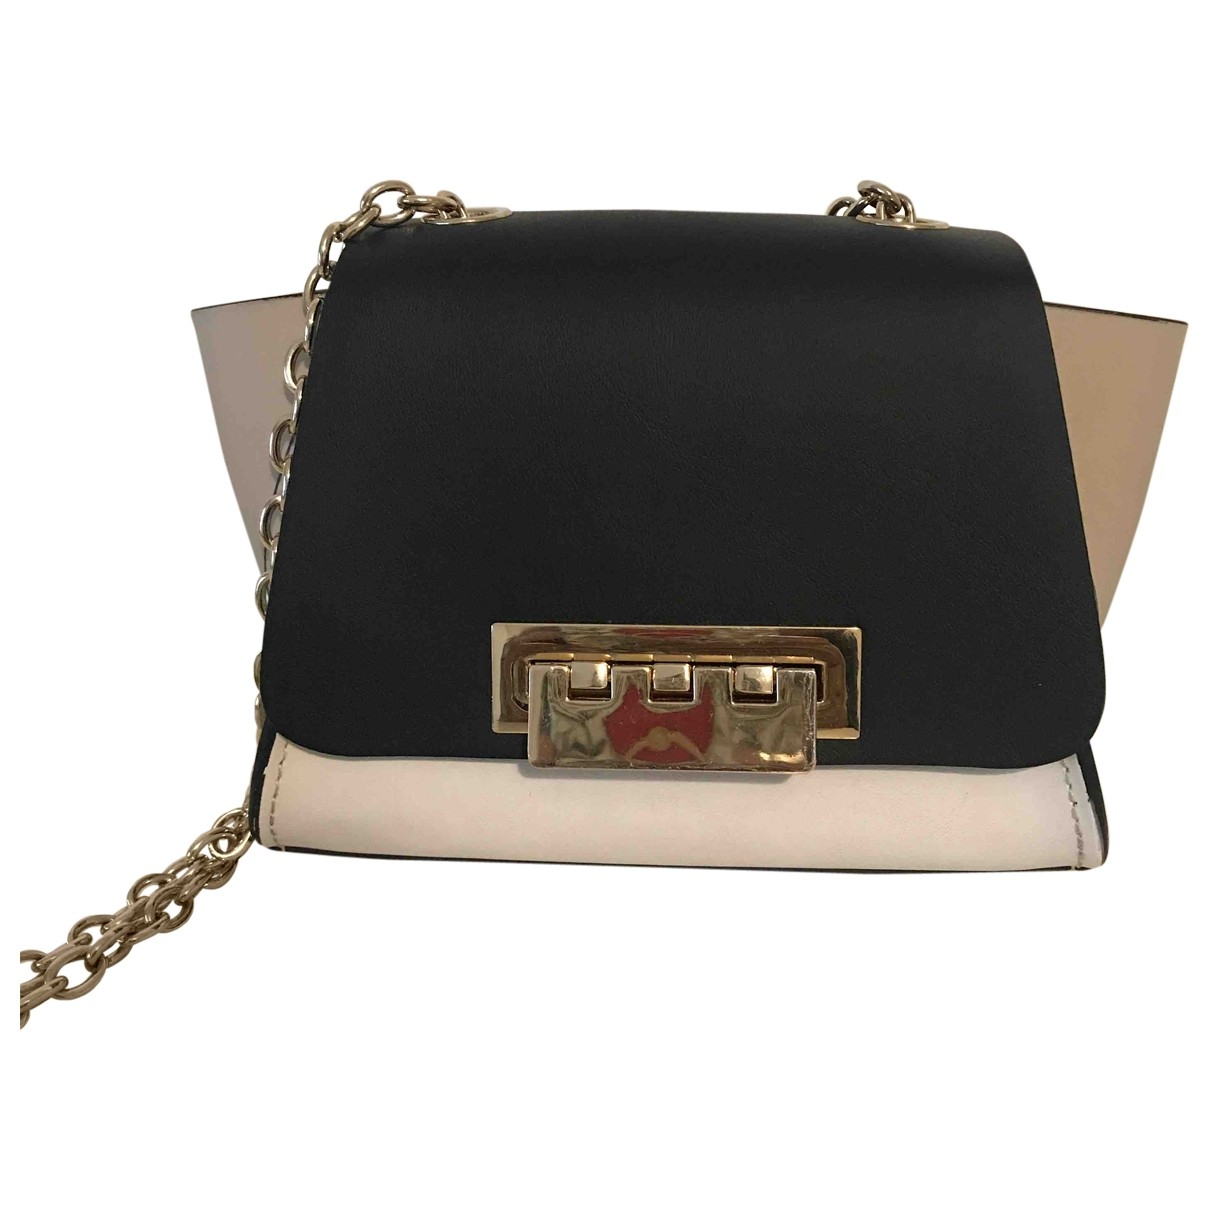 Zac Posen \N Beige Leather handbag for Women \N